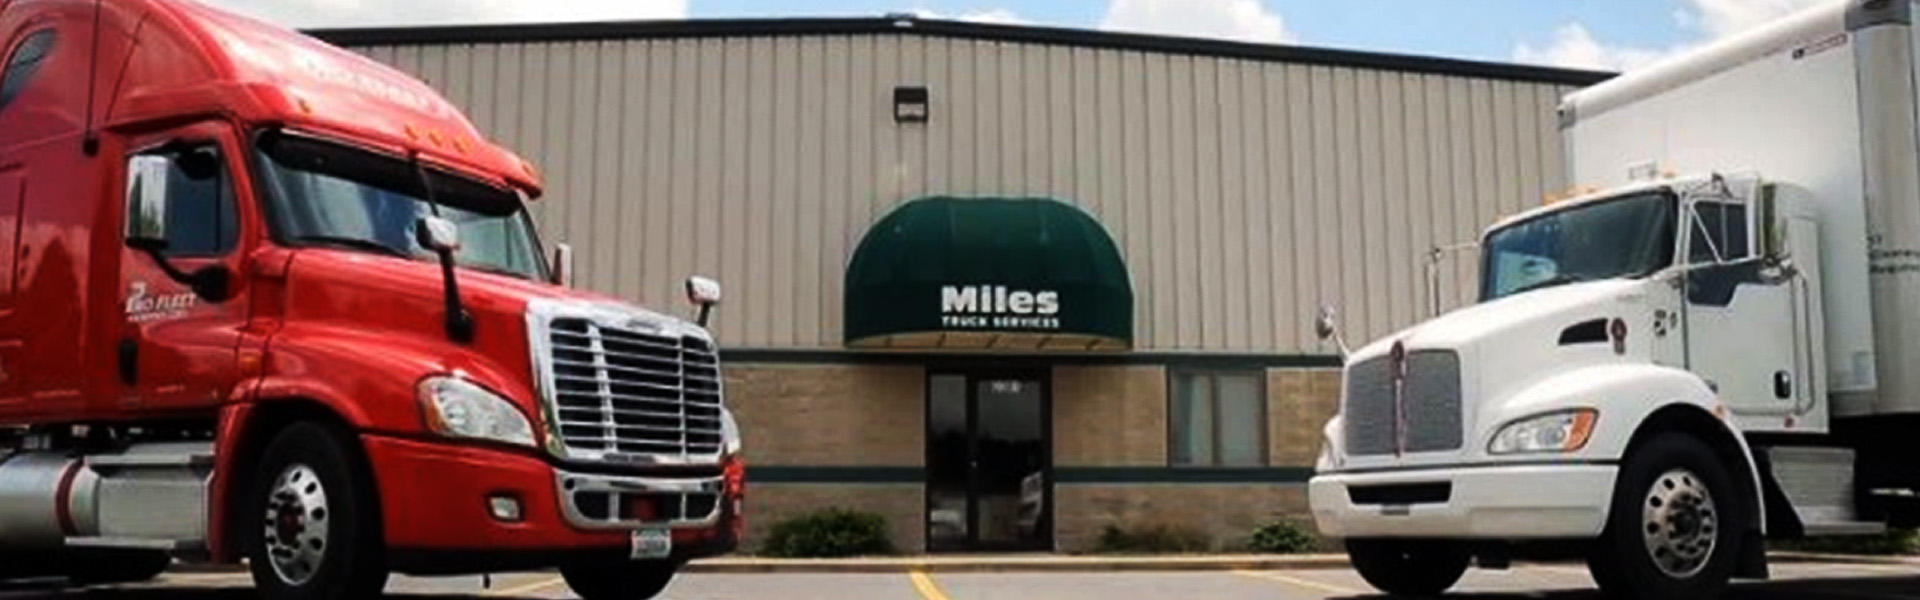 Miles Truck Services image 0